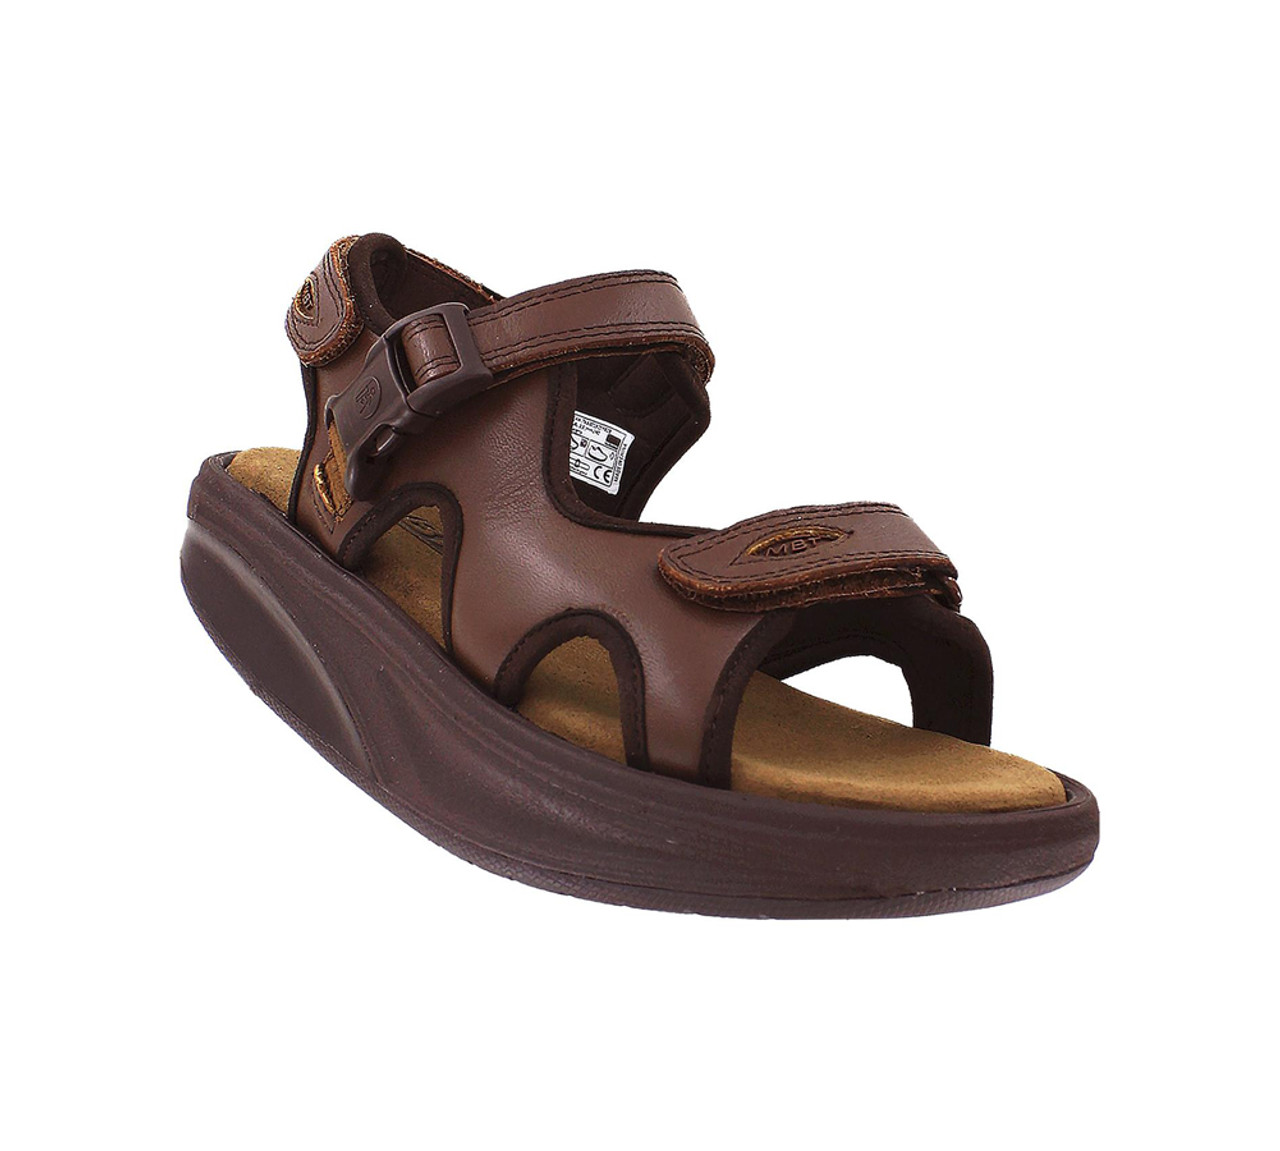 5b2976e8f33c MBT Women s Kisumu 3S Sandals Brown - Shop now   Shoolu.com